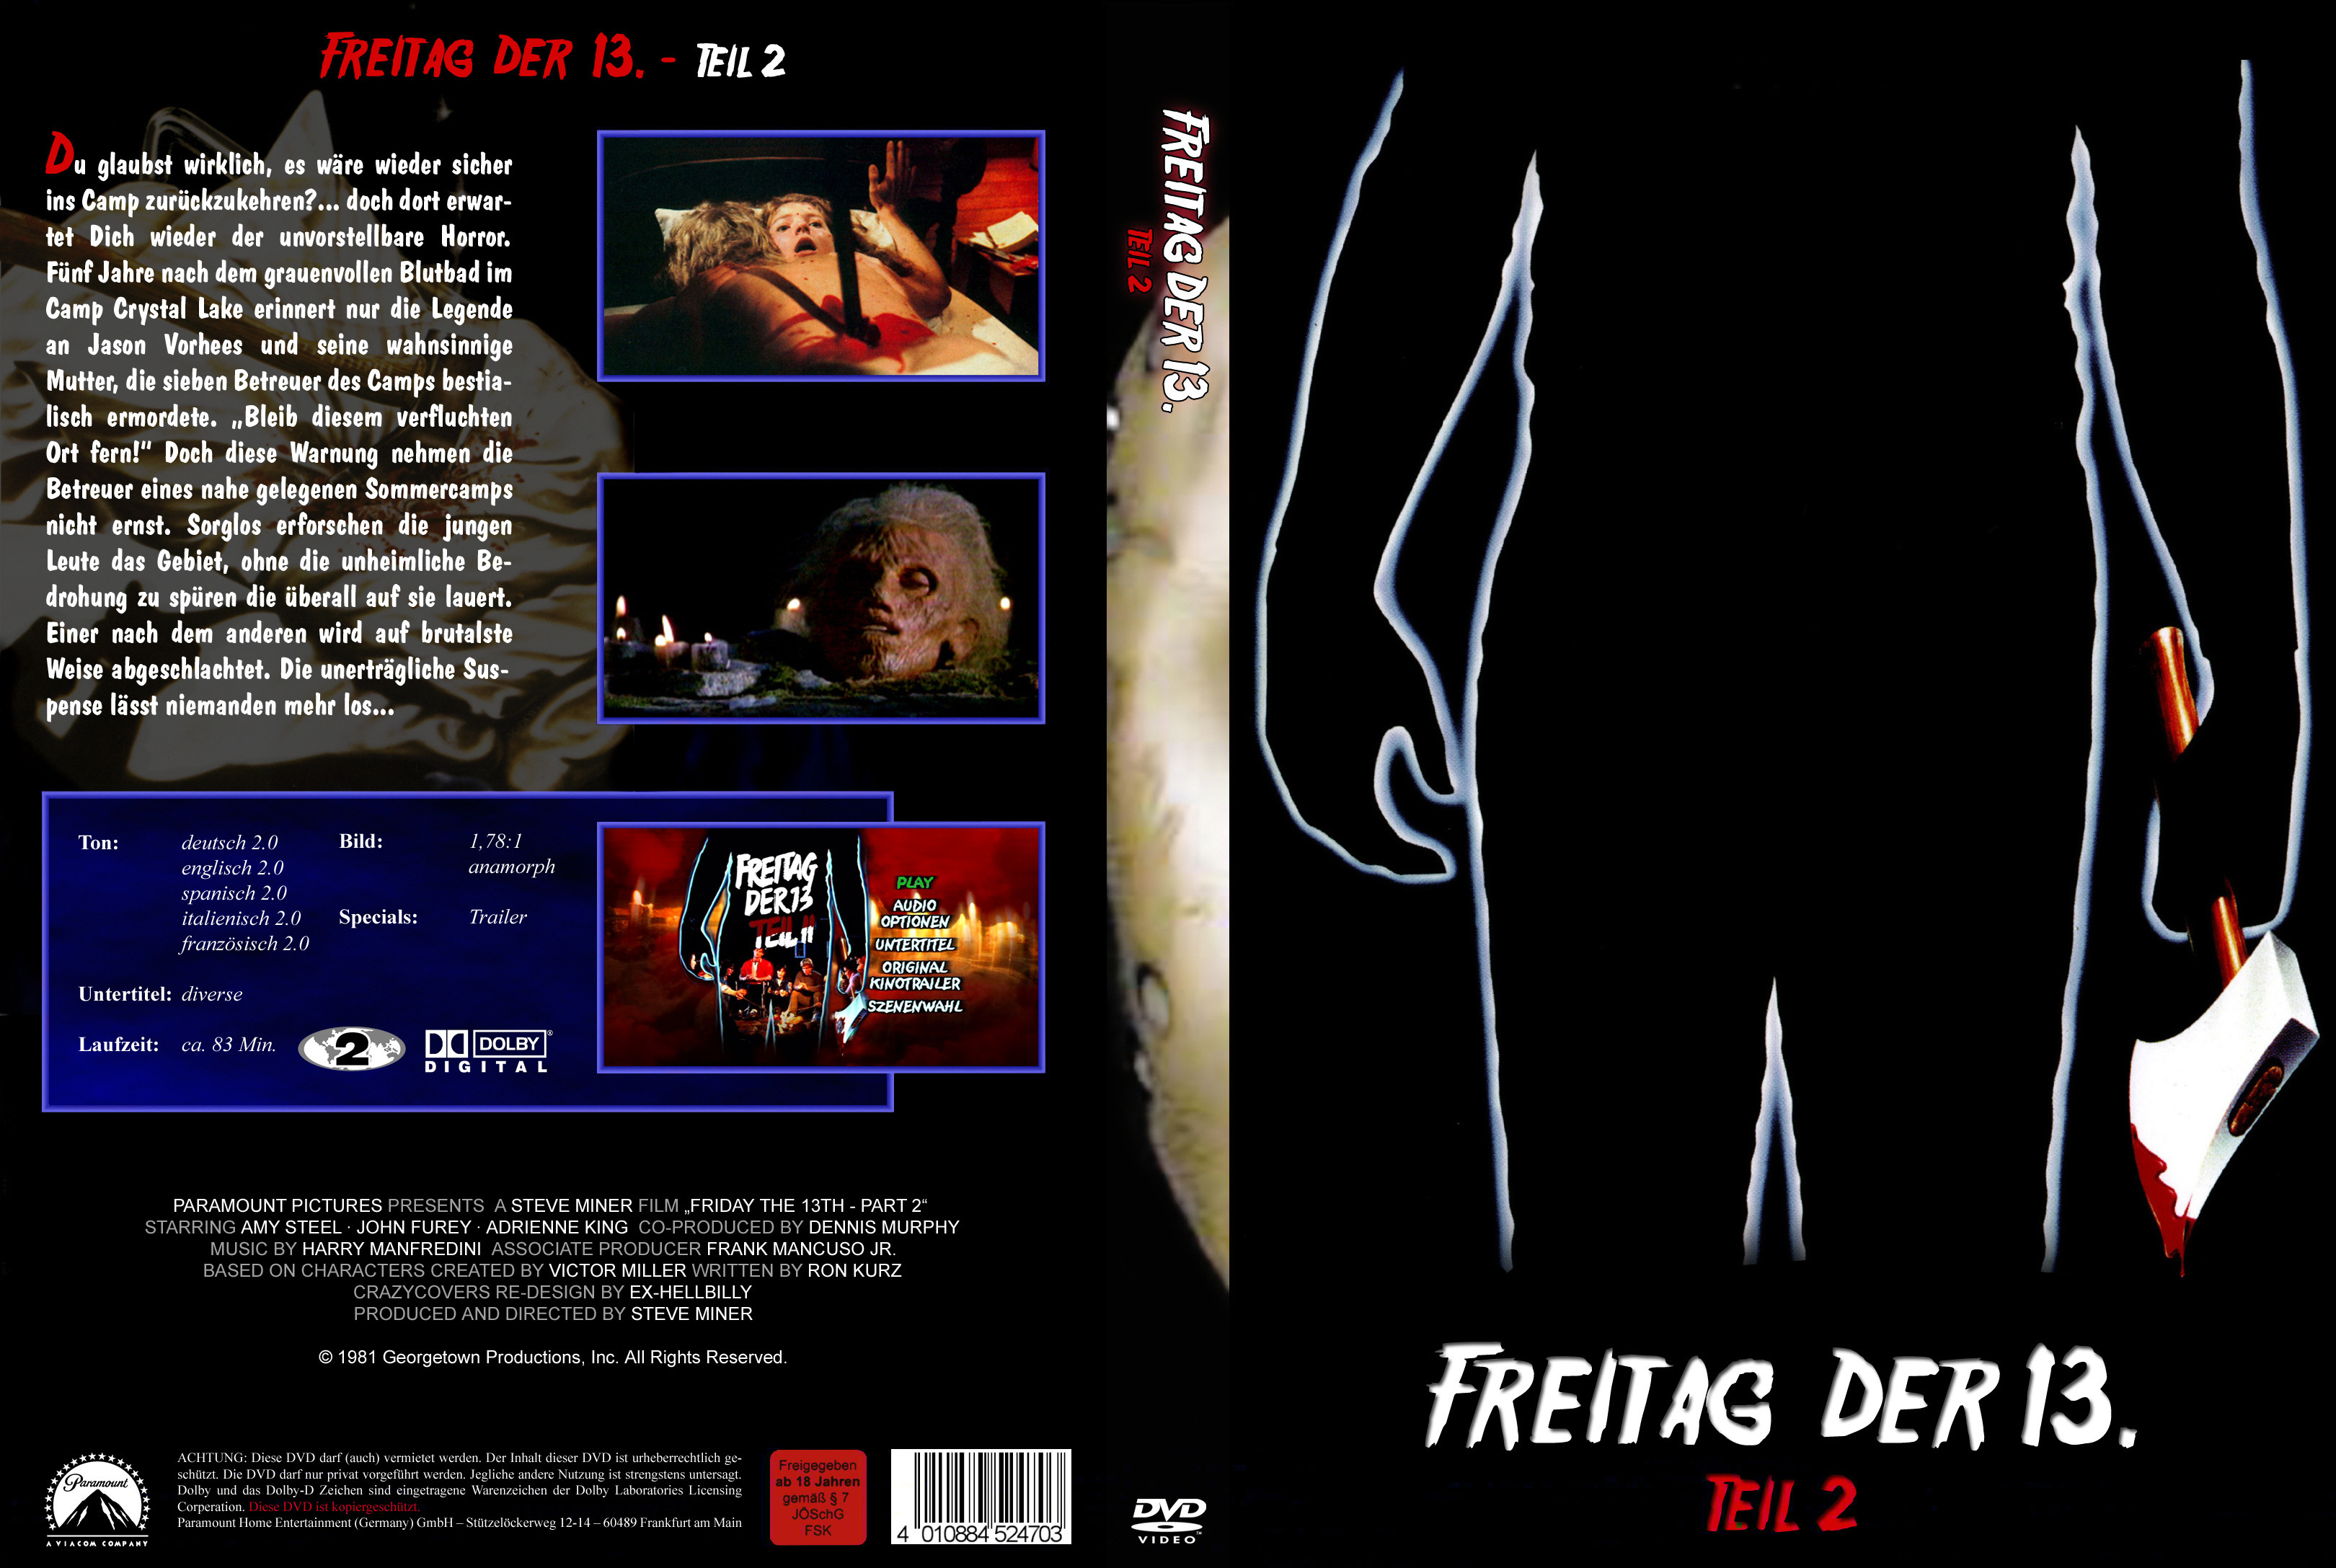 Freitag Der 13 Teil 2 1 Dvd Covers Cover Century Over 500 000 Album Art Covers For Free